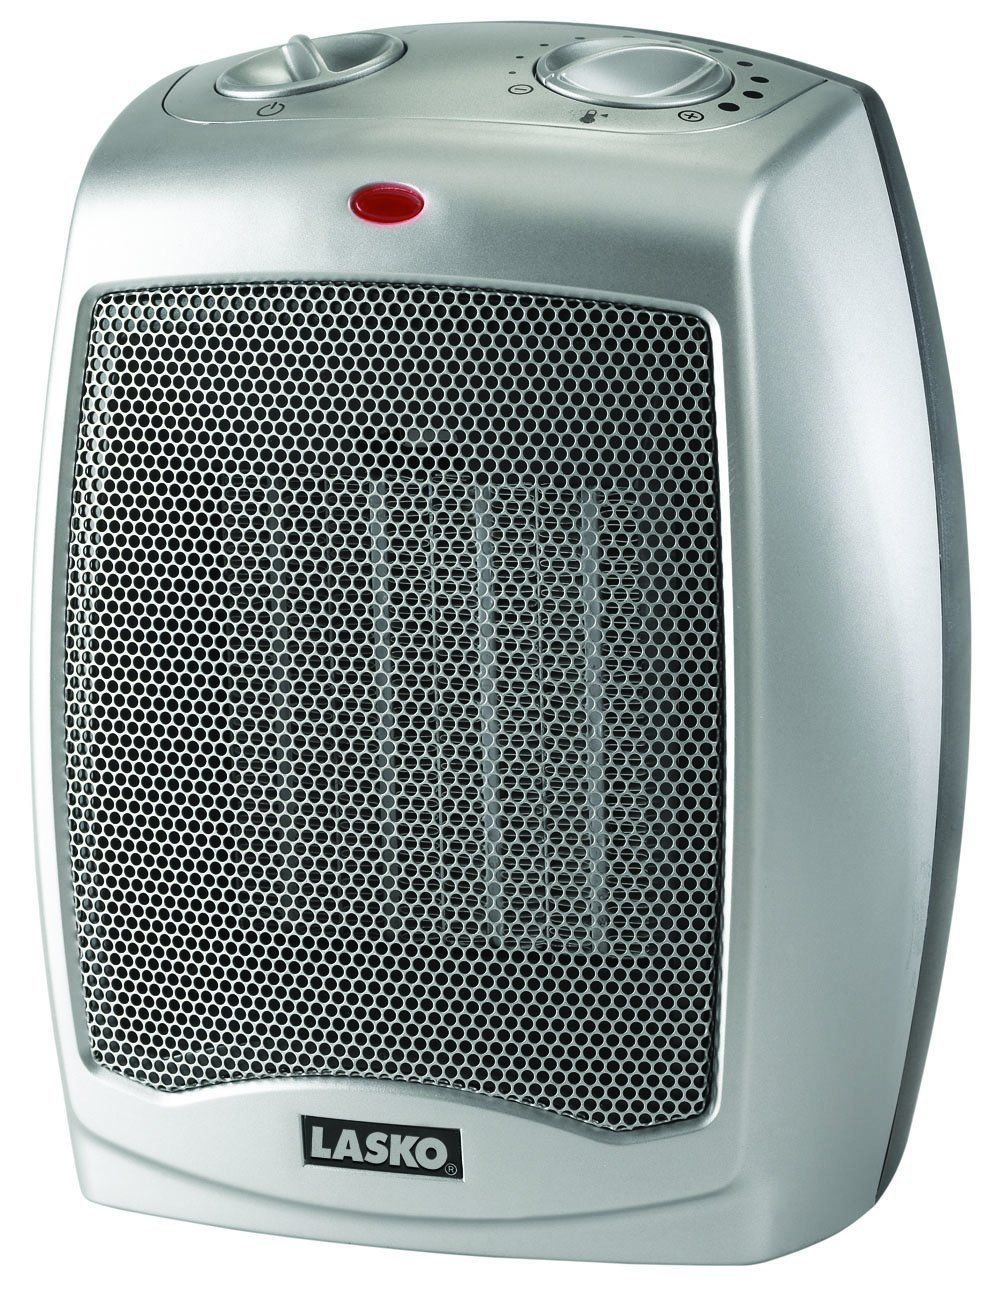 The Best Space Heaters Portable Space Heater Best Space Heater